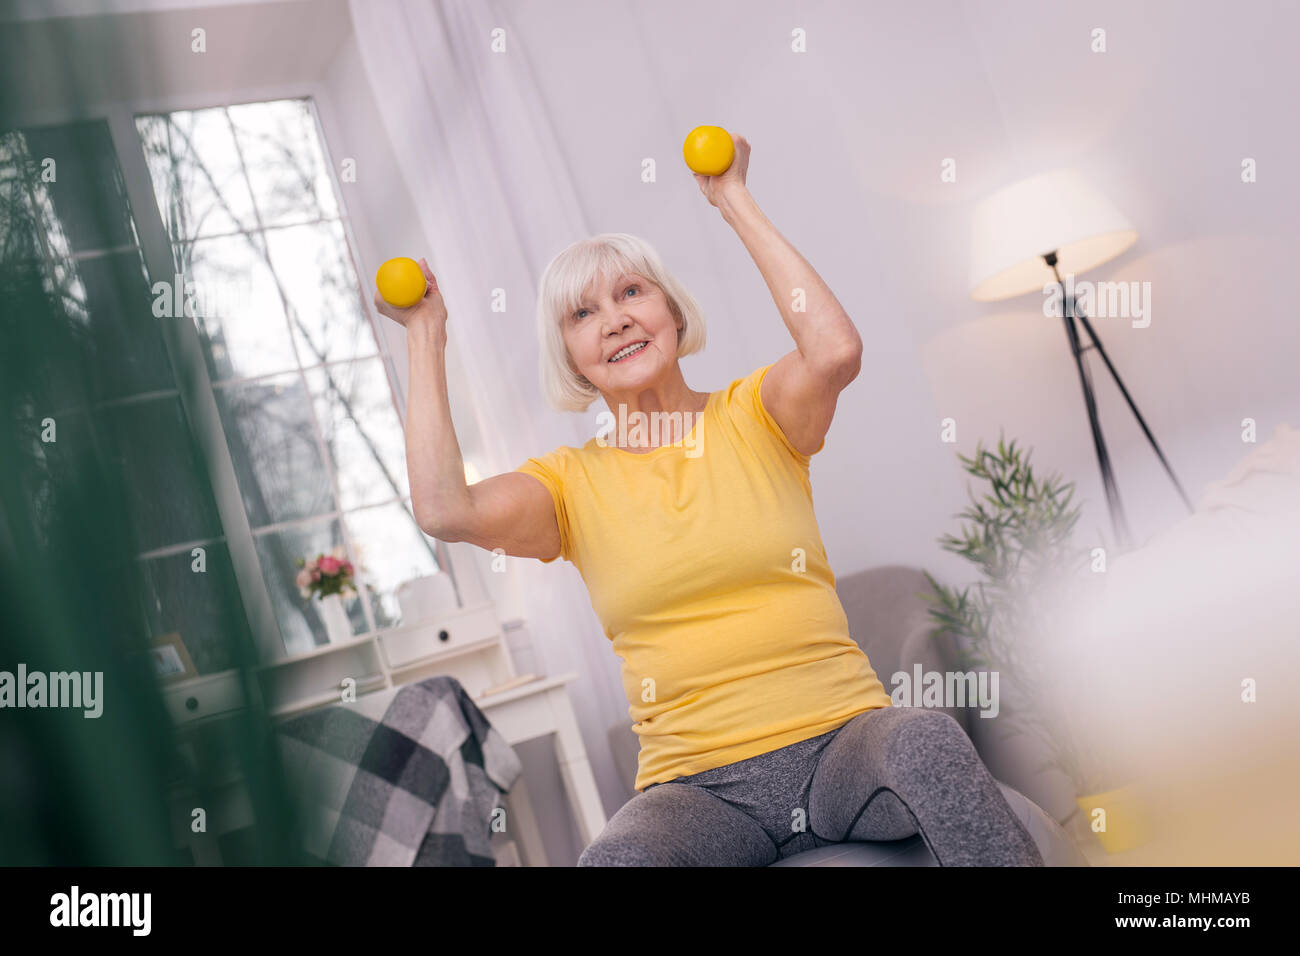 Charming senior woman smiling and lifting up dumbbells - Stock Image